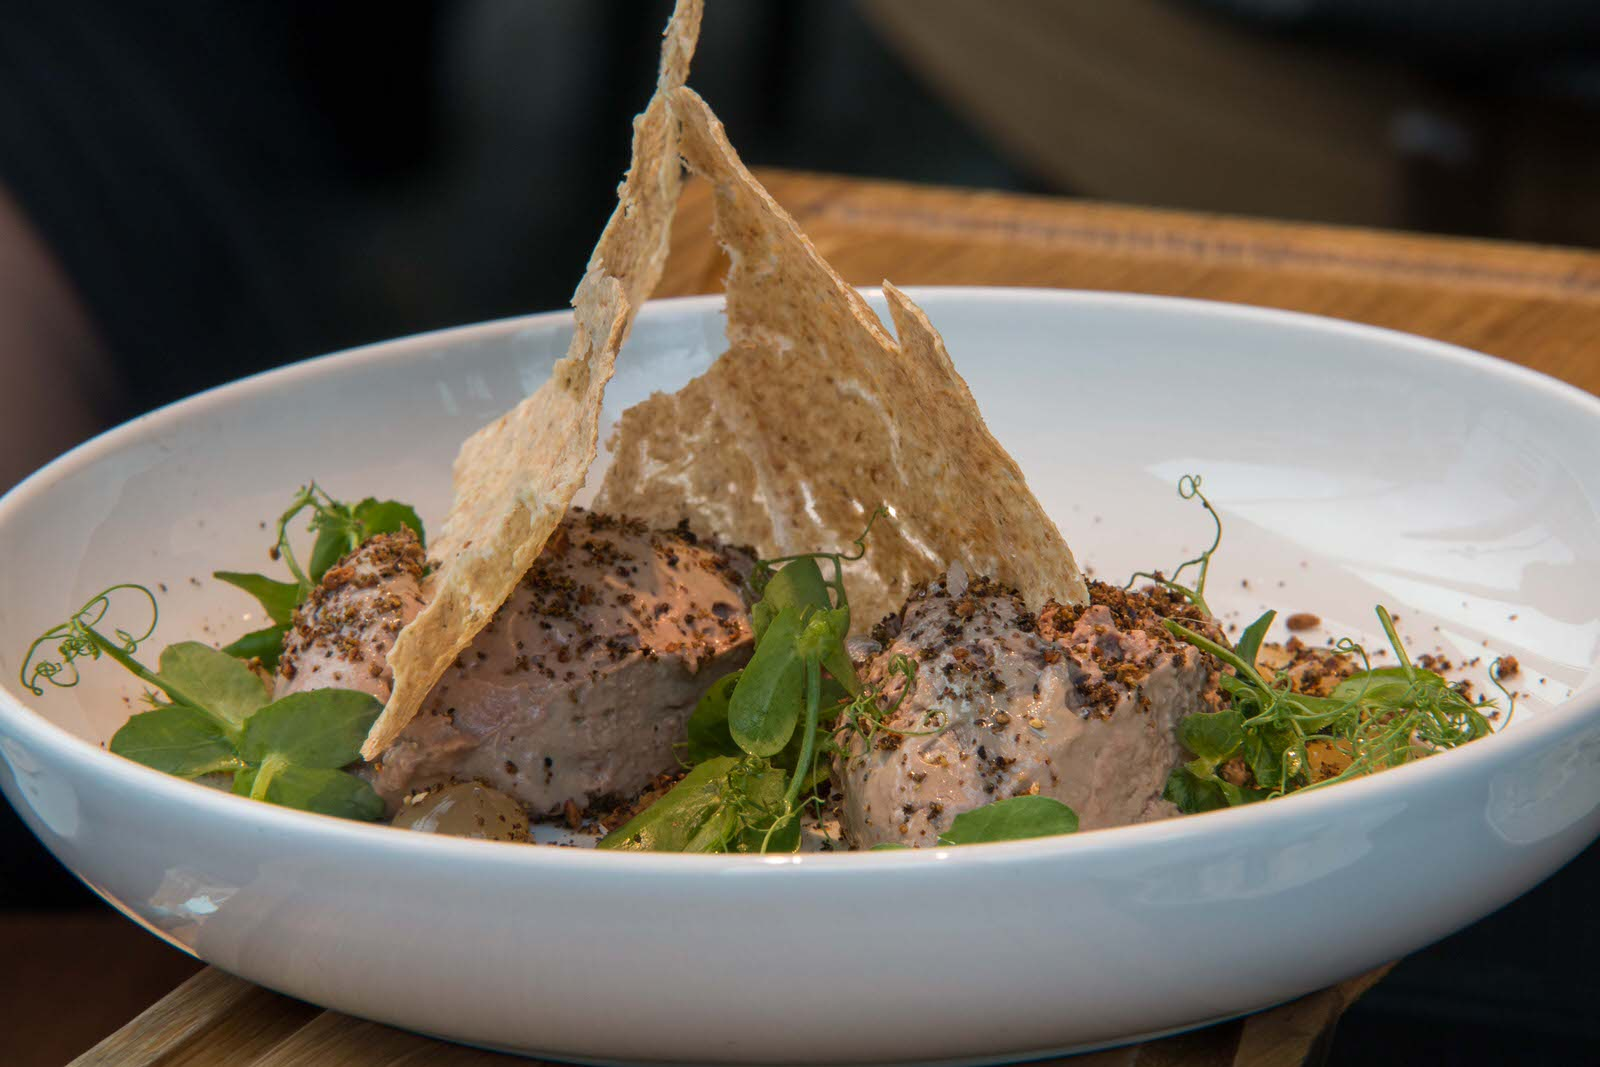 Chicken liver mousse with juniper berry gel and oatmeal chips. My absolute favorite of the starters. Photo by: Arnold Lan.